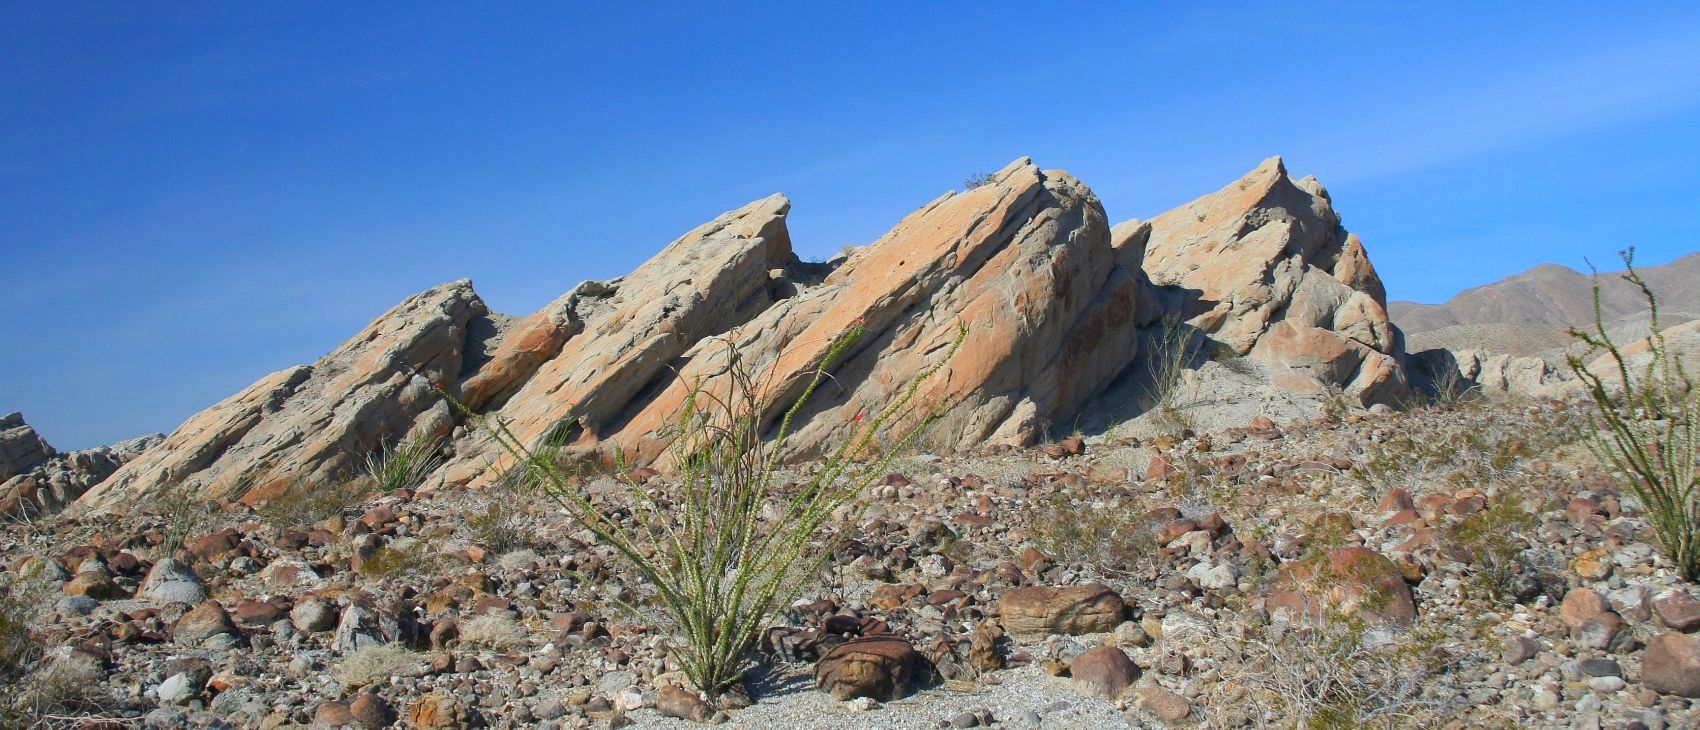 ROck formation in borrego springs